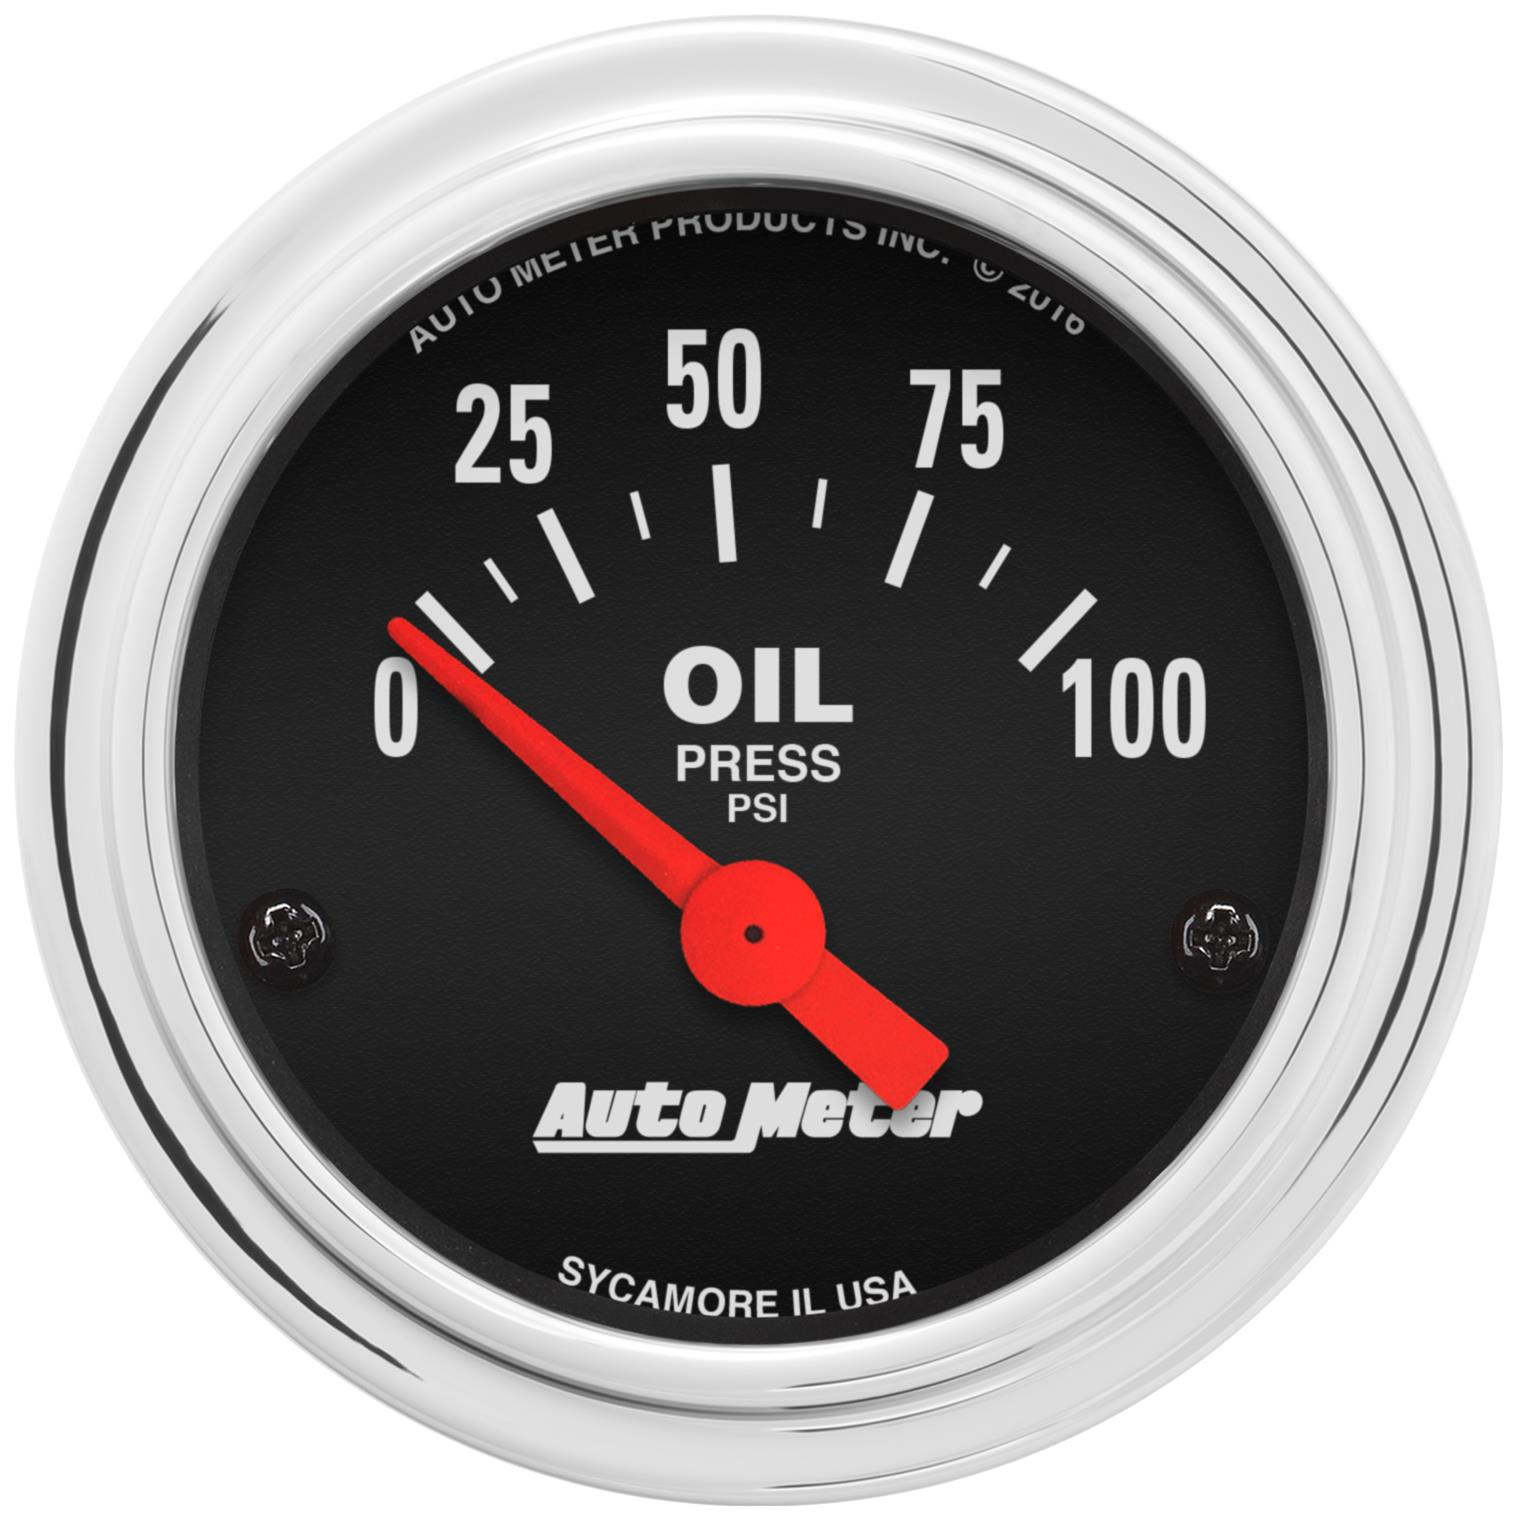 AutoMeter Traditional Chrome Analog Gauges 2522 - Free Shipping on Orders  Over $99 at Summit Racing